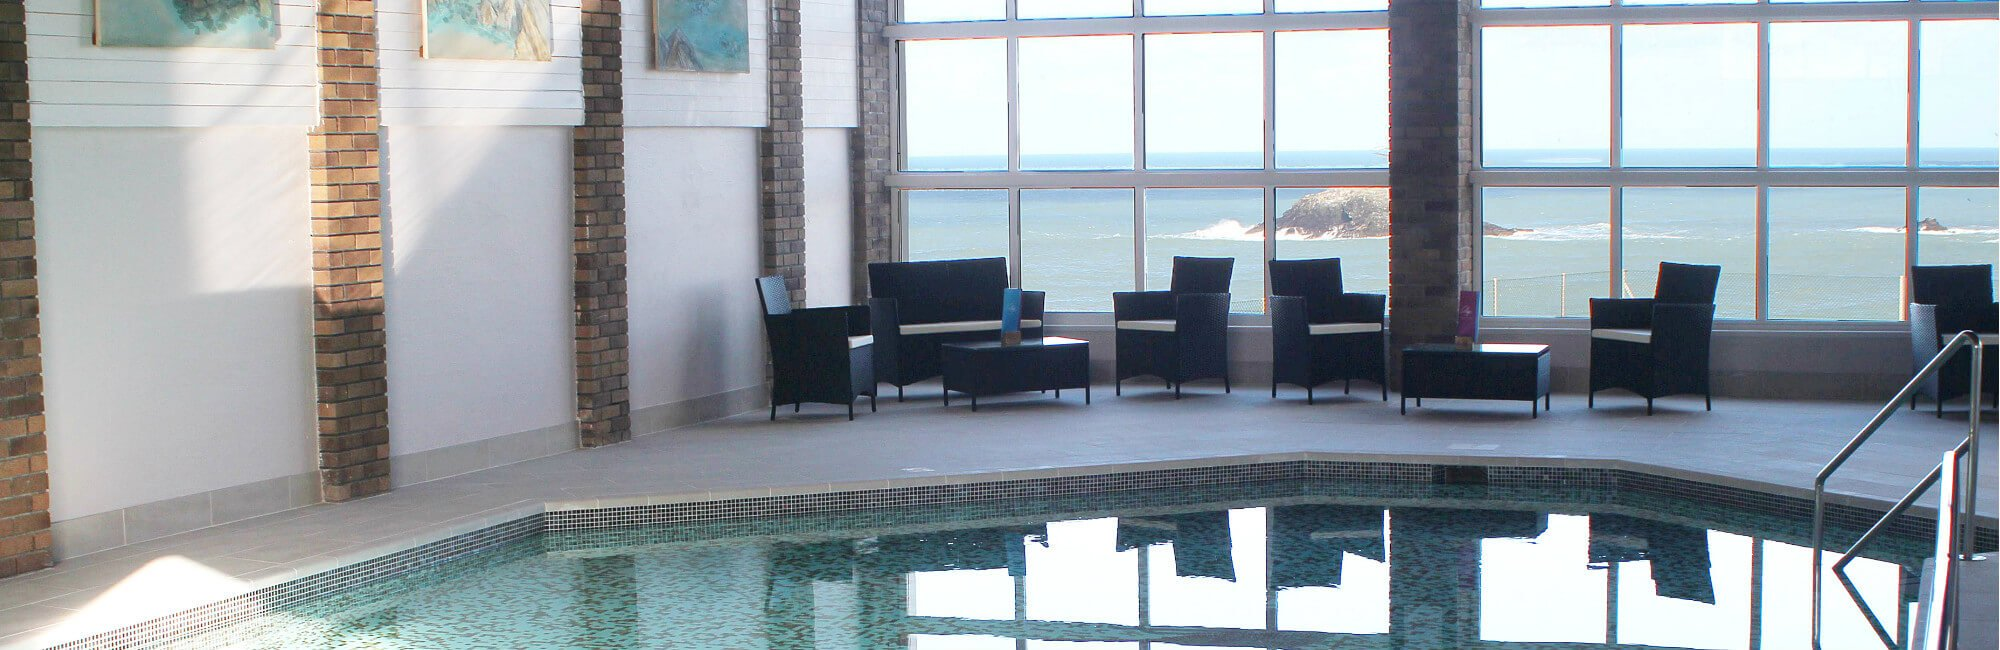 Crantock Bay Spa Pool - Spa Days